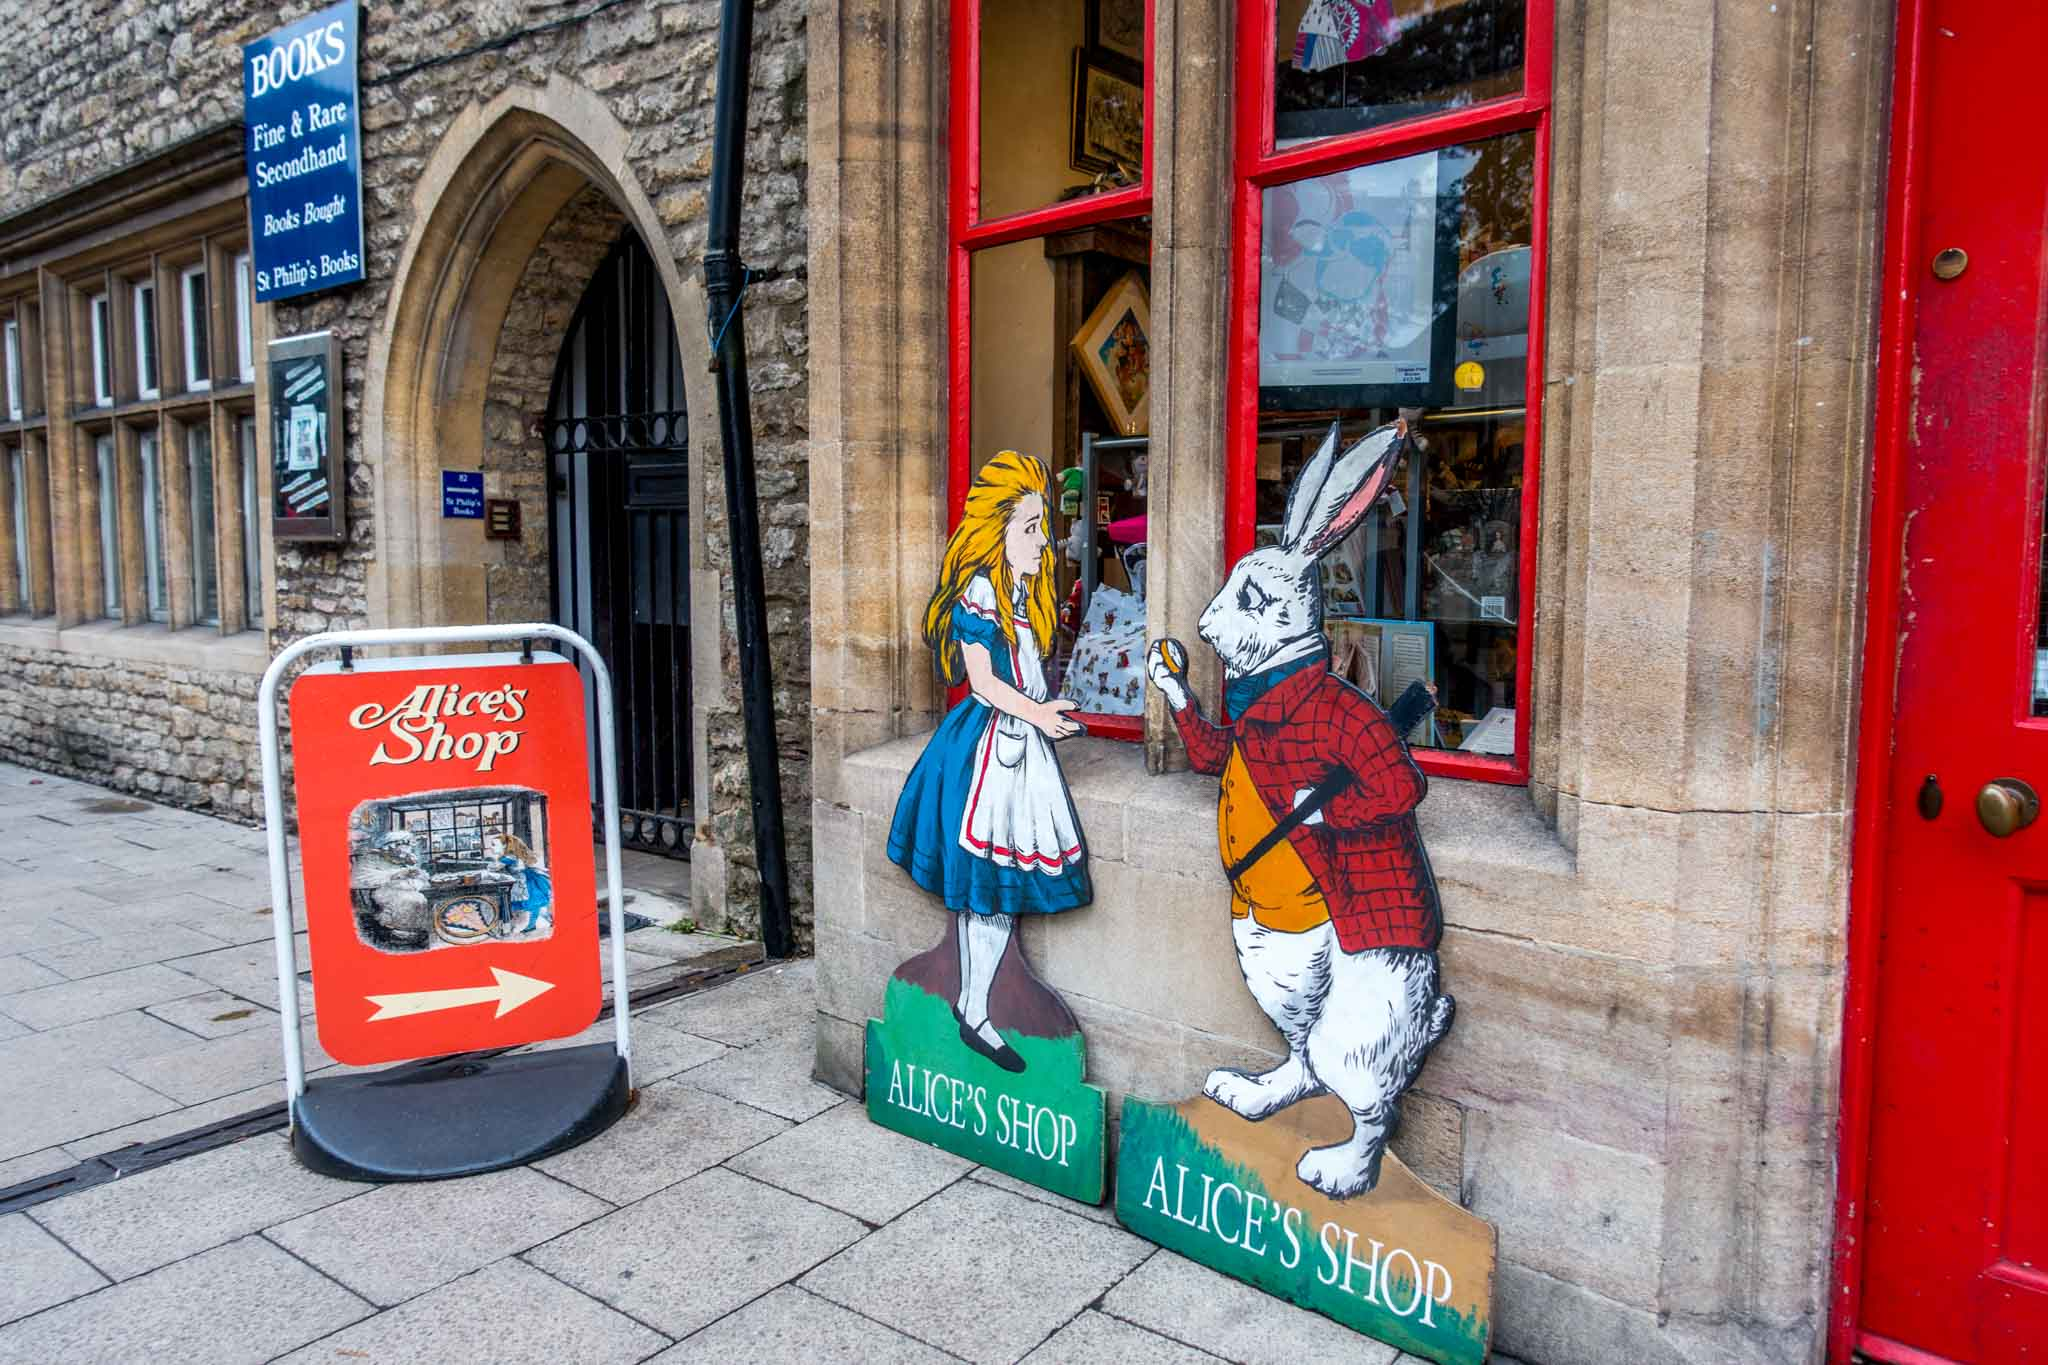 Signs for Alice's Shop including a girl and a rabbit